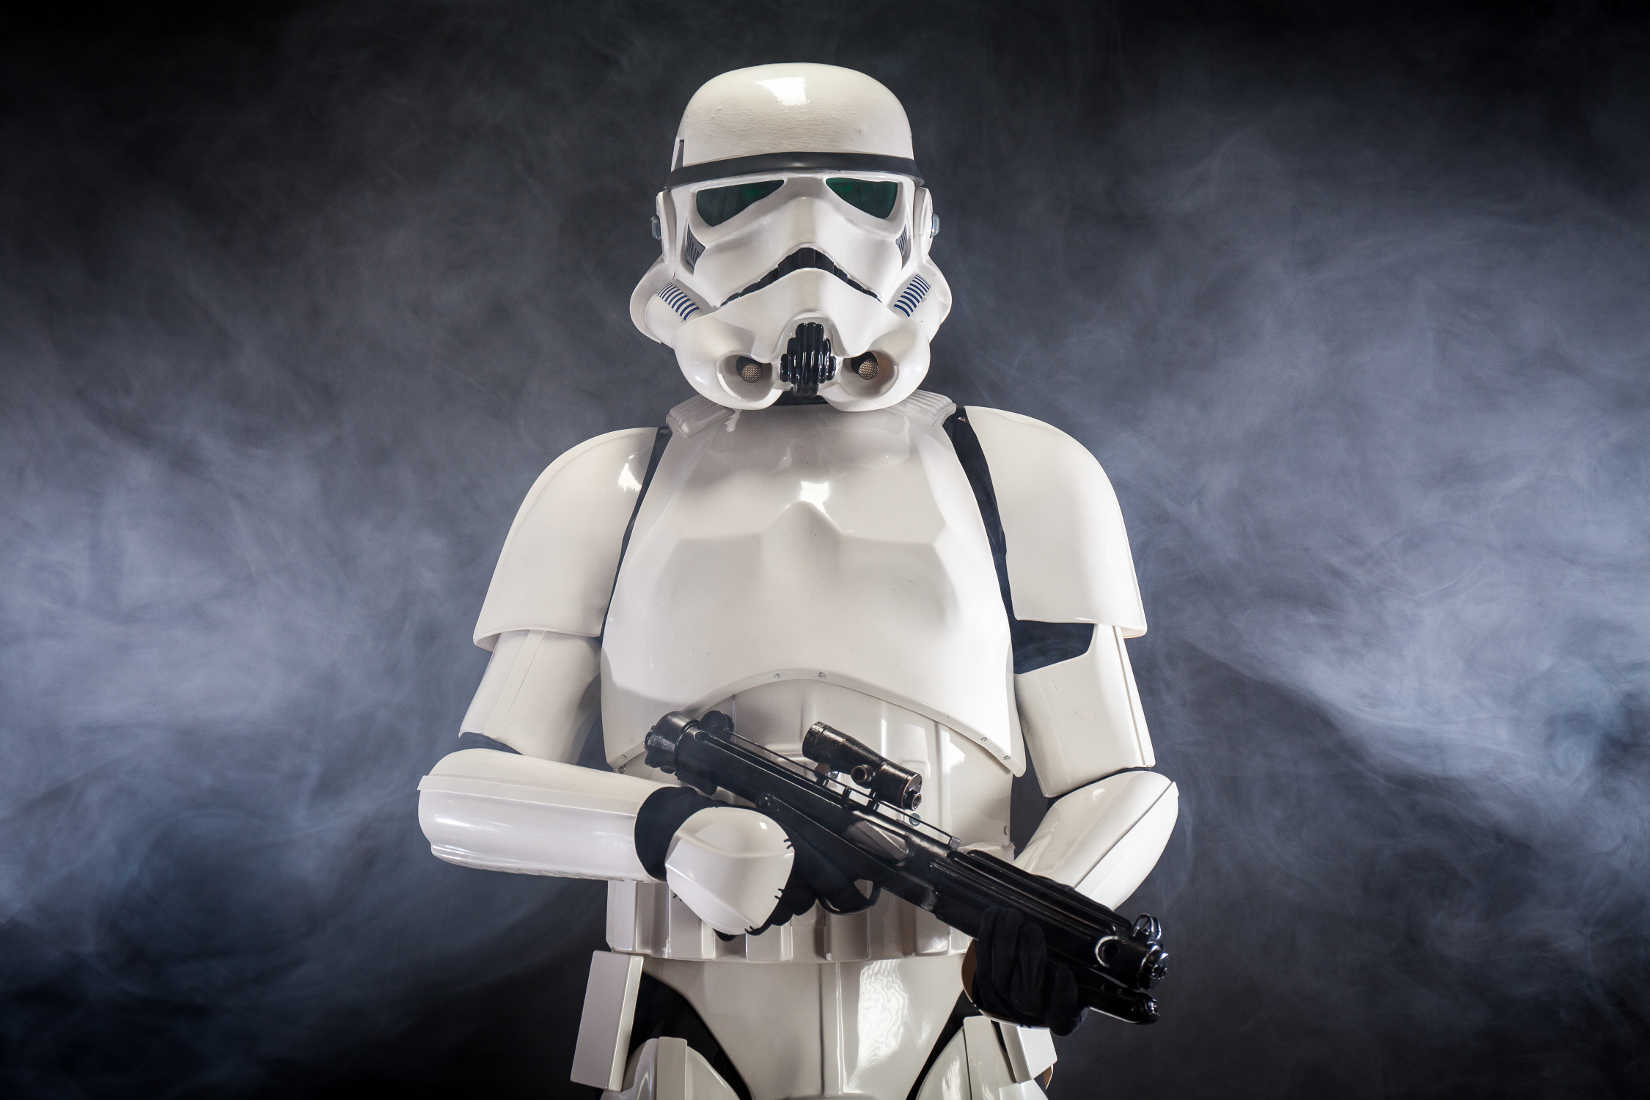 Canadian Police Hold Costumed Employee at Gun Point over Plastic Blaster on Star Wars Day